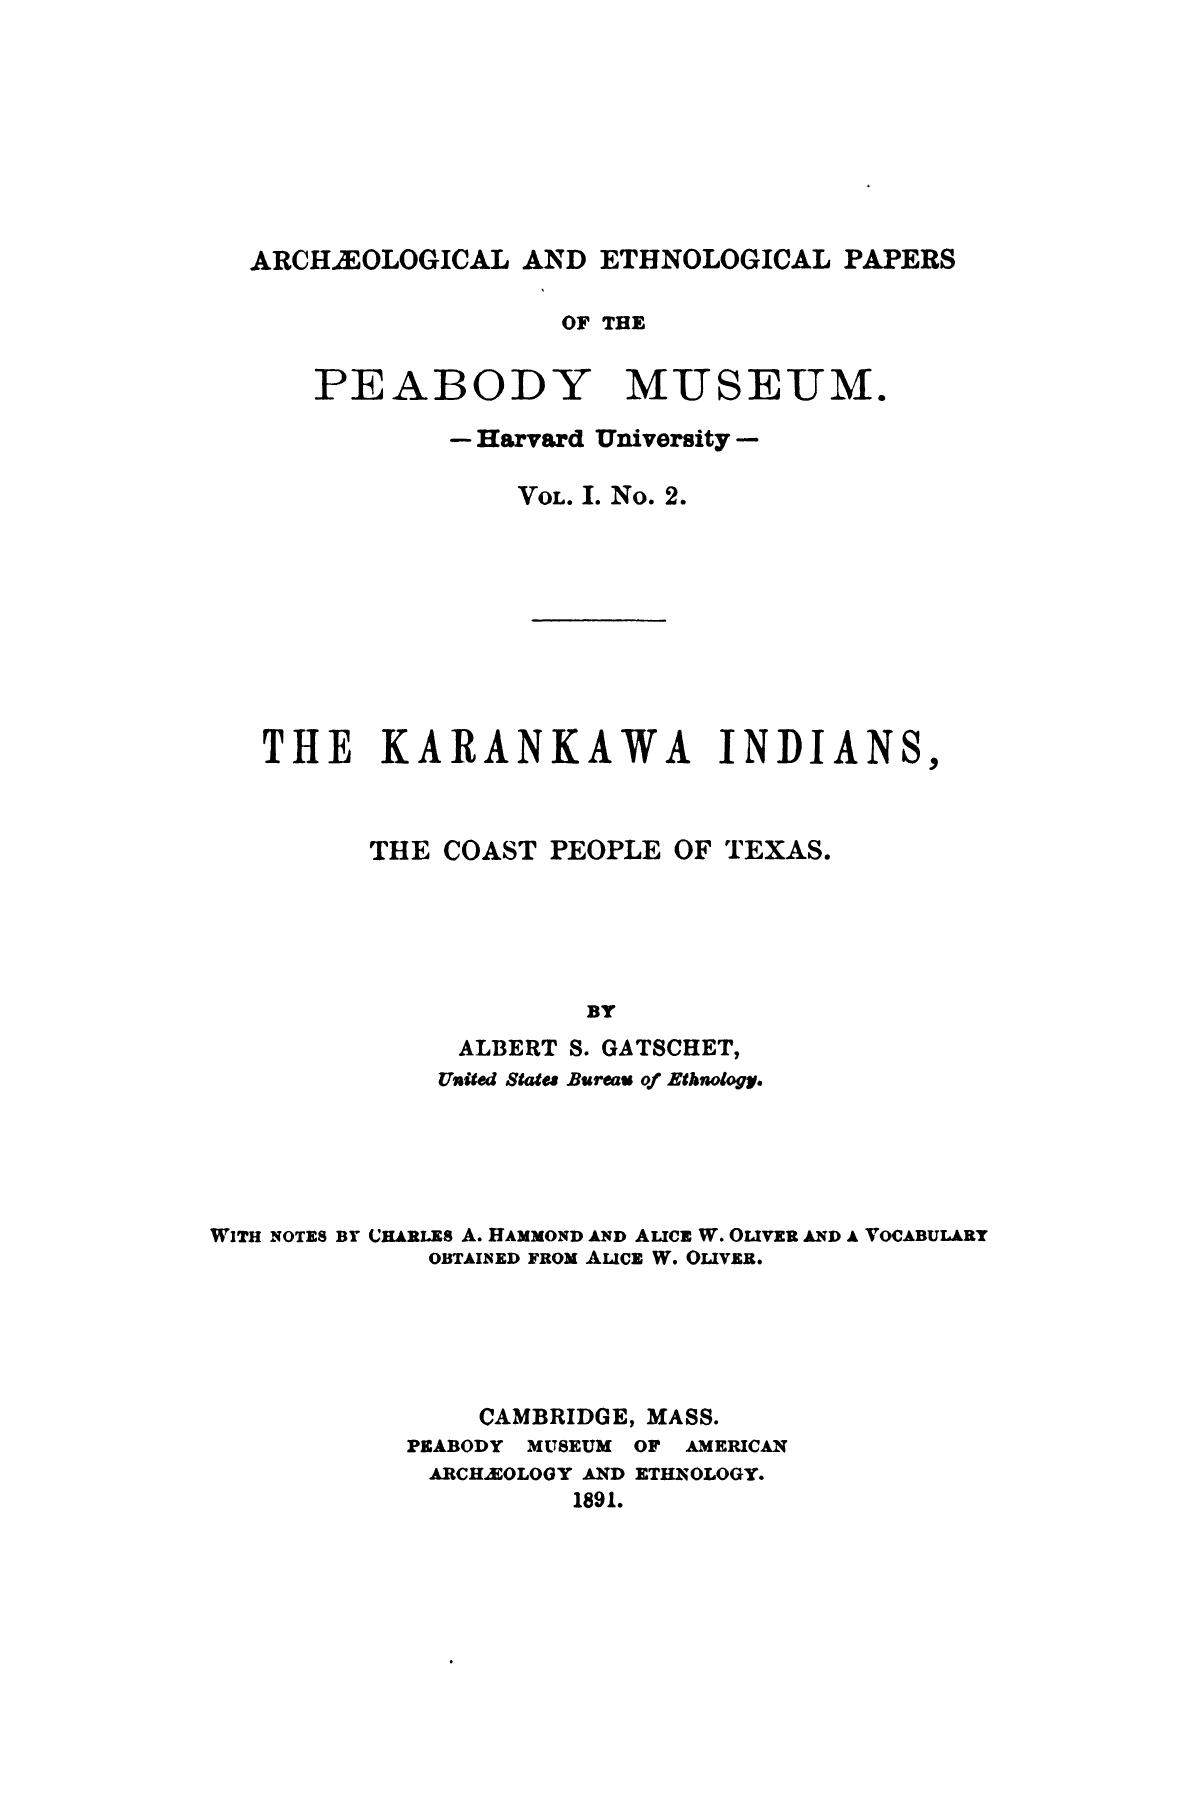 The Karankawa Indians, The Coast People of Texas.                                                                                                      Title Page